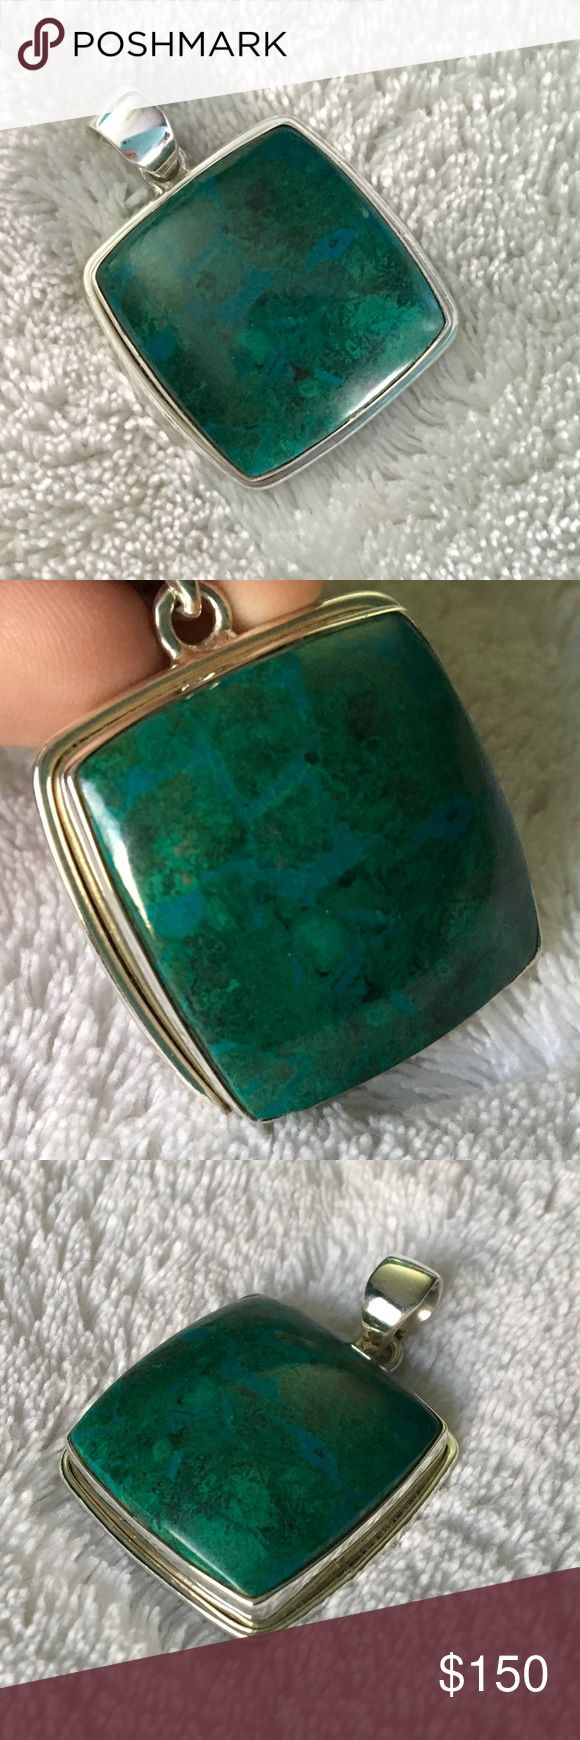 Chrysocolla Pendant (C) in .925 silver Beautiful square shaped chrysocolla Pendant in .925 silver.  Stone Information - Chrysocolla is a gemstone quality hydrous copper silicate, often forming with copper salts, iron and manganese oxides.  Chemical formula - Cu2H2Si2O5(OH)4.   Azurite, malachite and chrysocolla are commonly found in the oxidized zones of copper veins and deposits. The color is usually green to sky blue and is idiochromatic due to the presence of the chromophore copper…